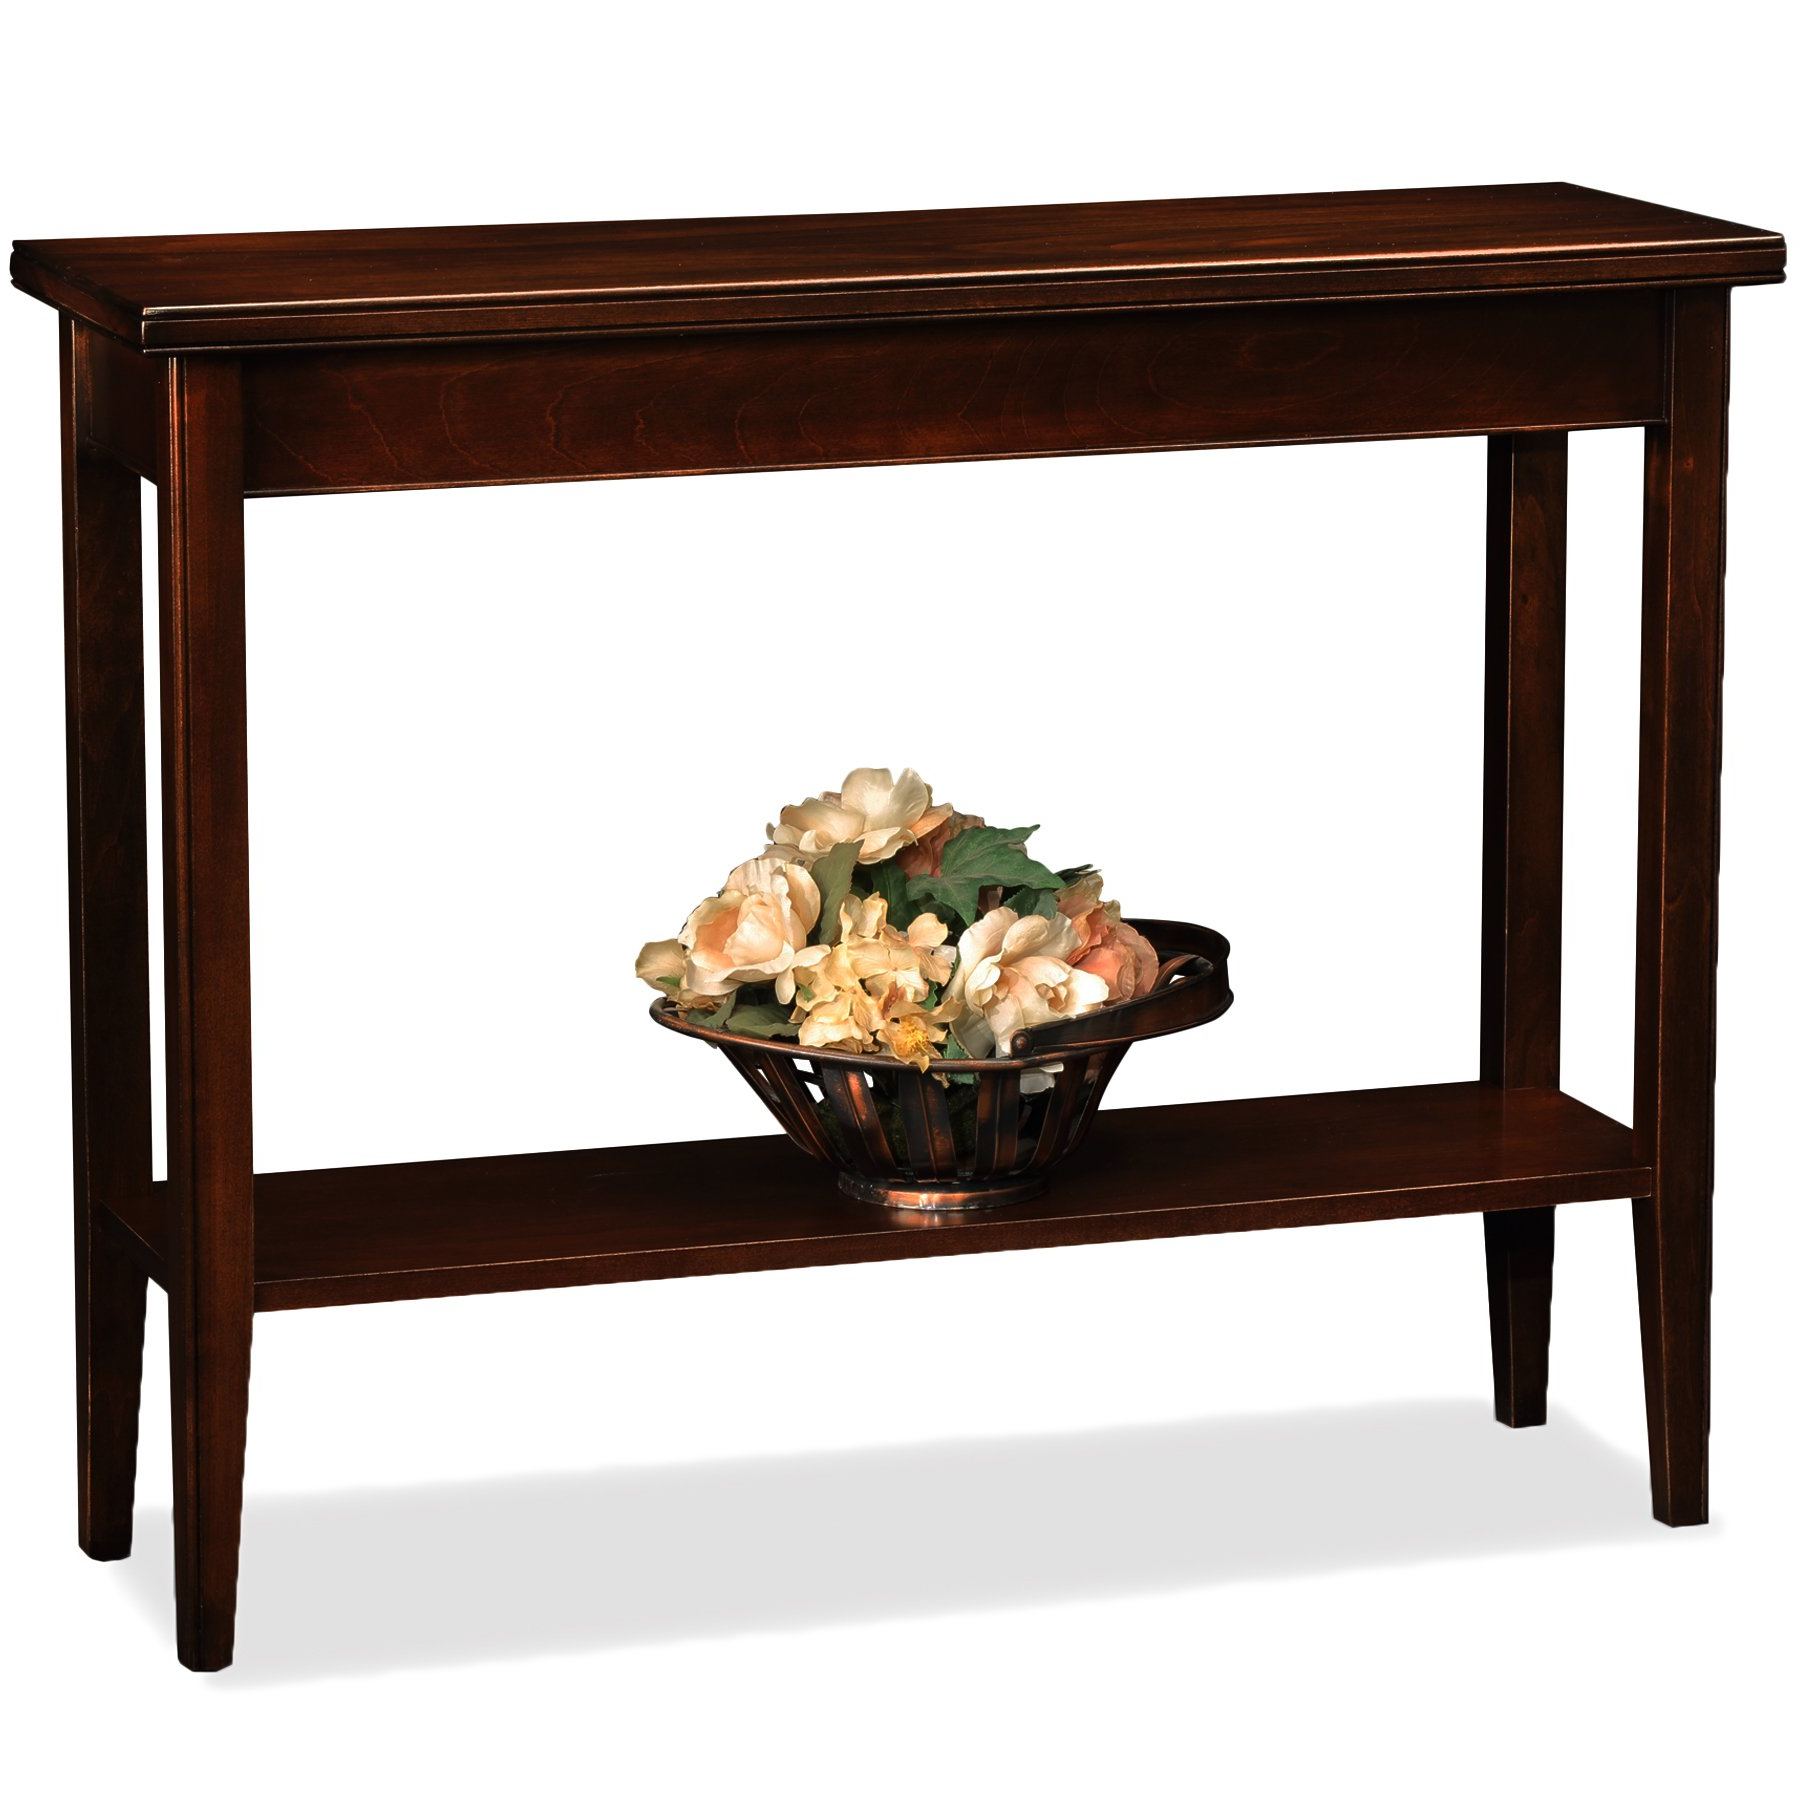 Amazon: Leick Laurent Hall Console Table: Kitchen & Dining Within Current Layered Wood Small Square Console Tables (View 3 of 20)